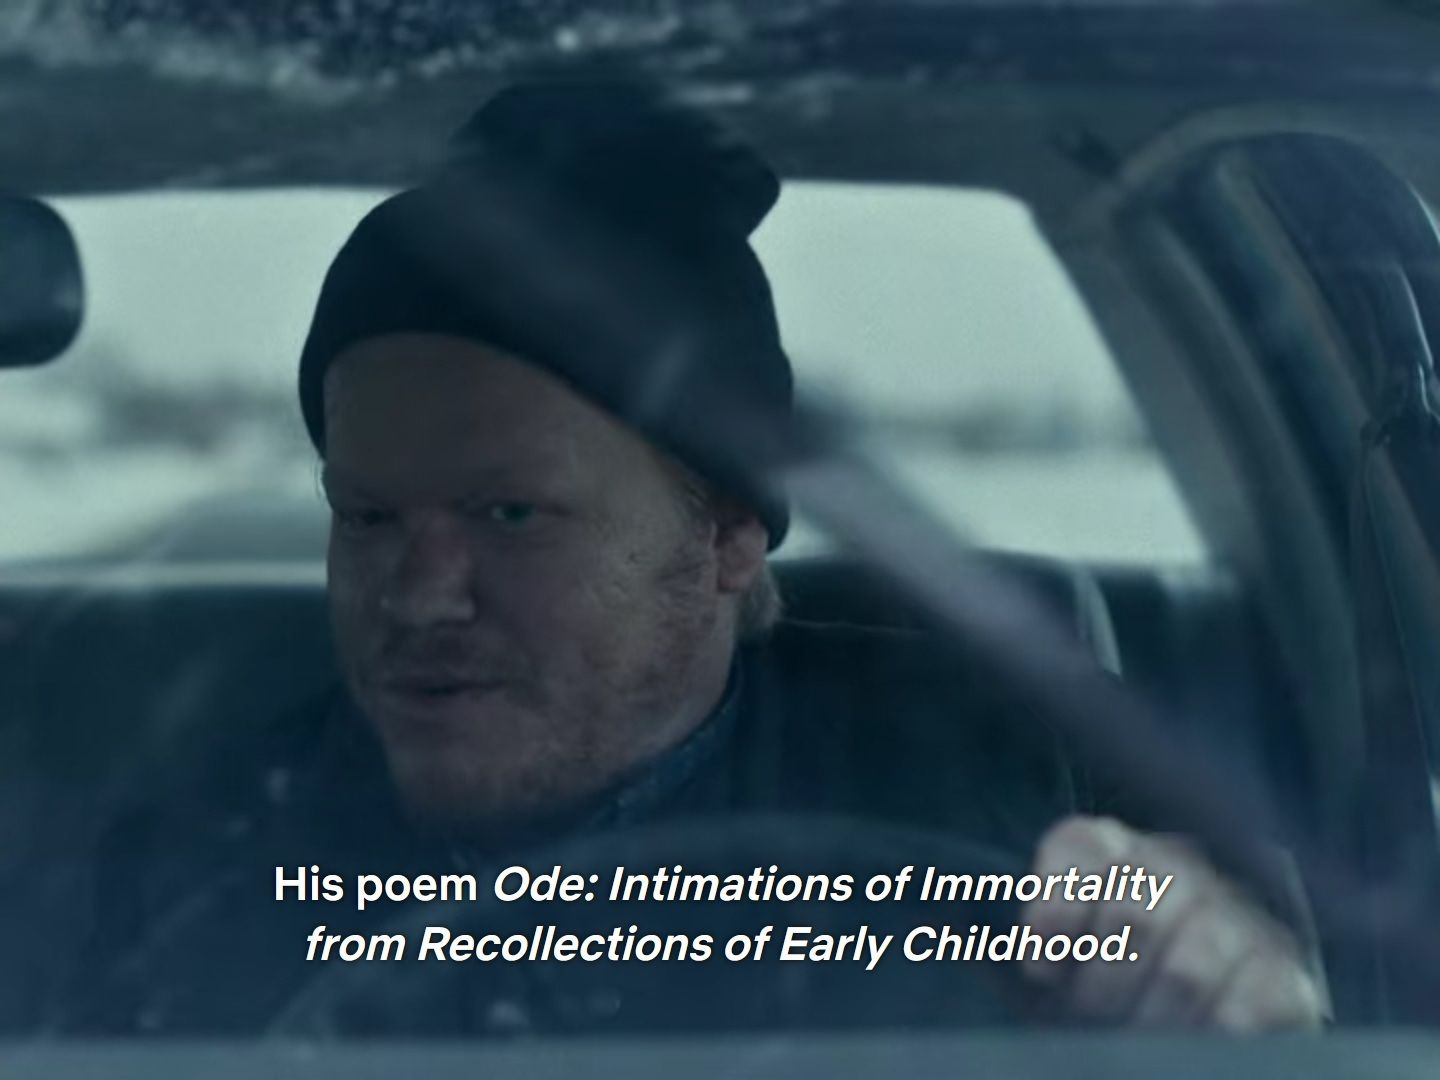 """Still from I'm Thinking of Ending Things: Jake says, """"His poem Ode: Intimations of Immortality from Recollections of Early Childhood"""""""